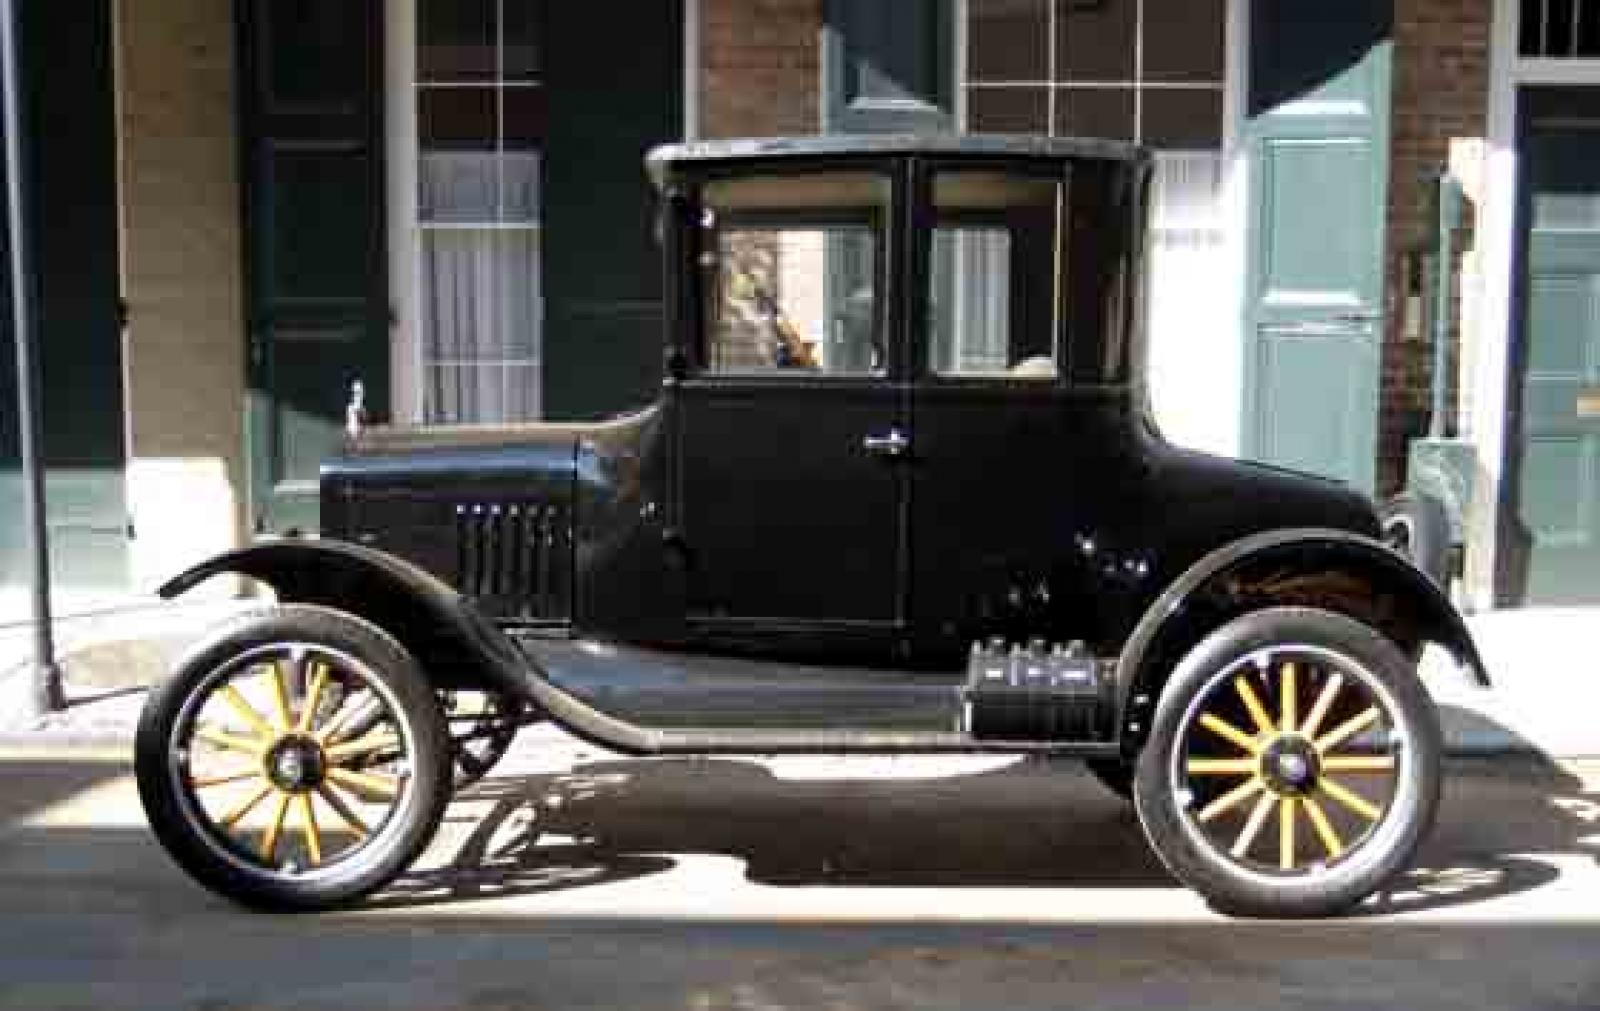 the modest beginning of ford Like most great enterprises, ford's beginnings were modest the company had anxious moments in its infancy, balancing precariously on the brink of bankruptcy until cash inflows from sales began the earliest record of a shipment is july 20, 1903, approximately one month after incorporation.